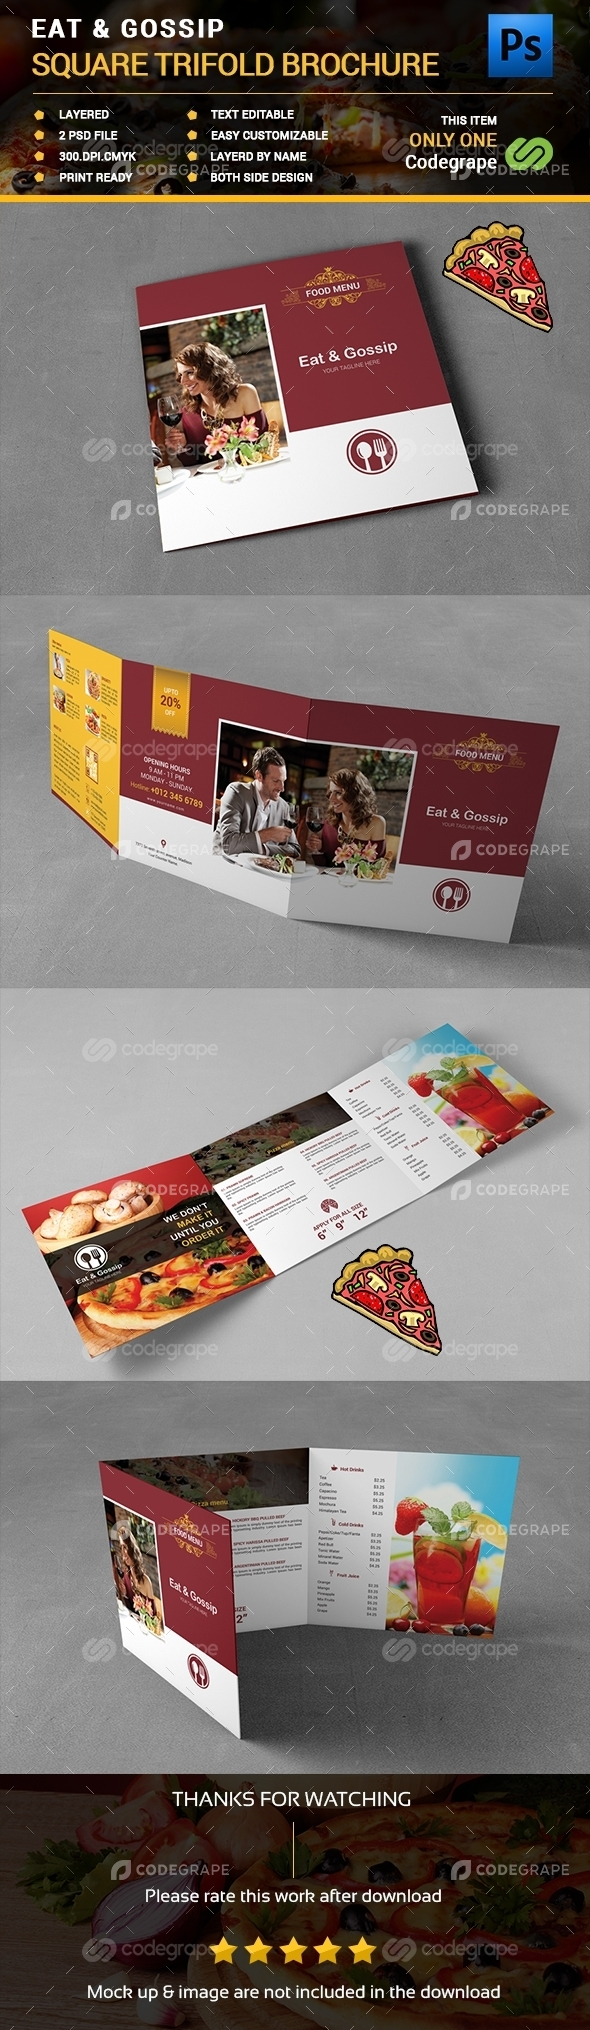 Eat & Gossip Square Trifold Brochure